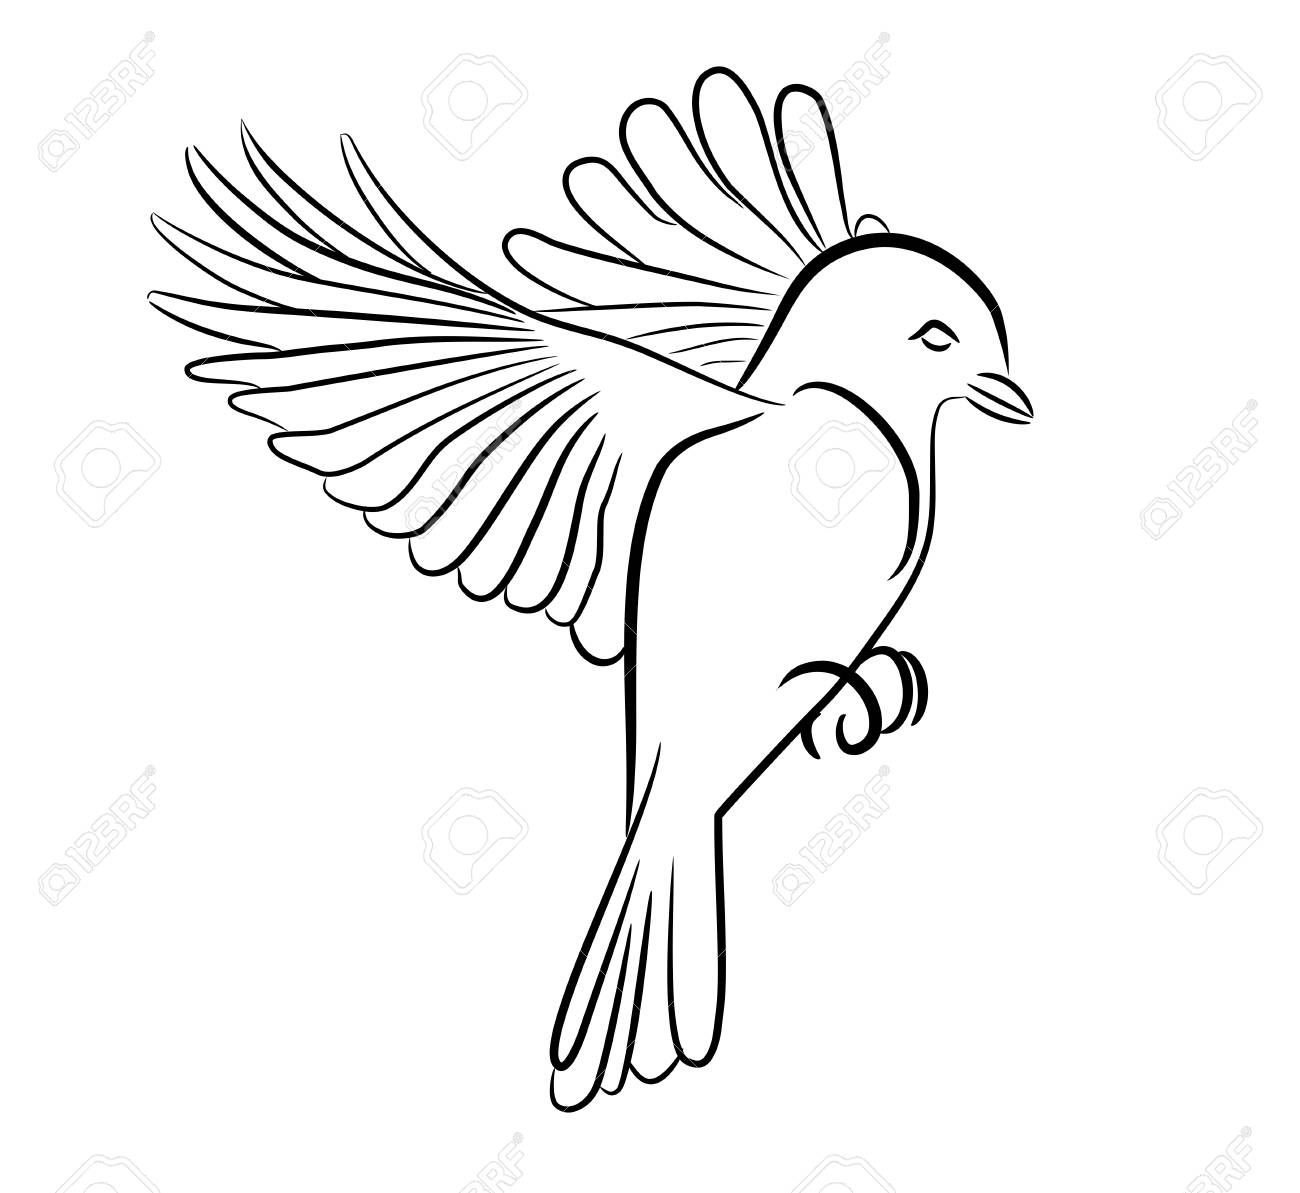 Stylized Bird Flying Artistic Drawing Silouete Traces Royalty Free Cliparts Vectors And Stock Illustration Image 95153859